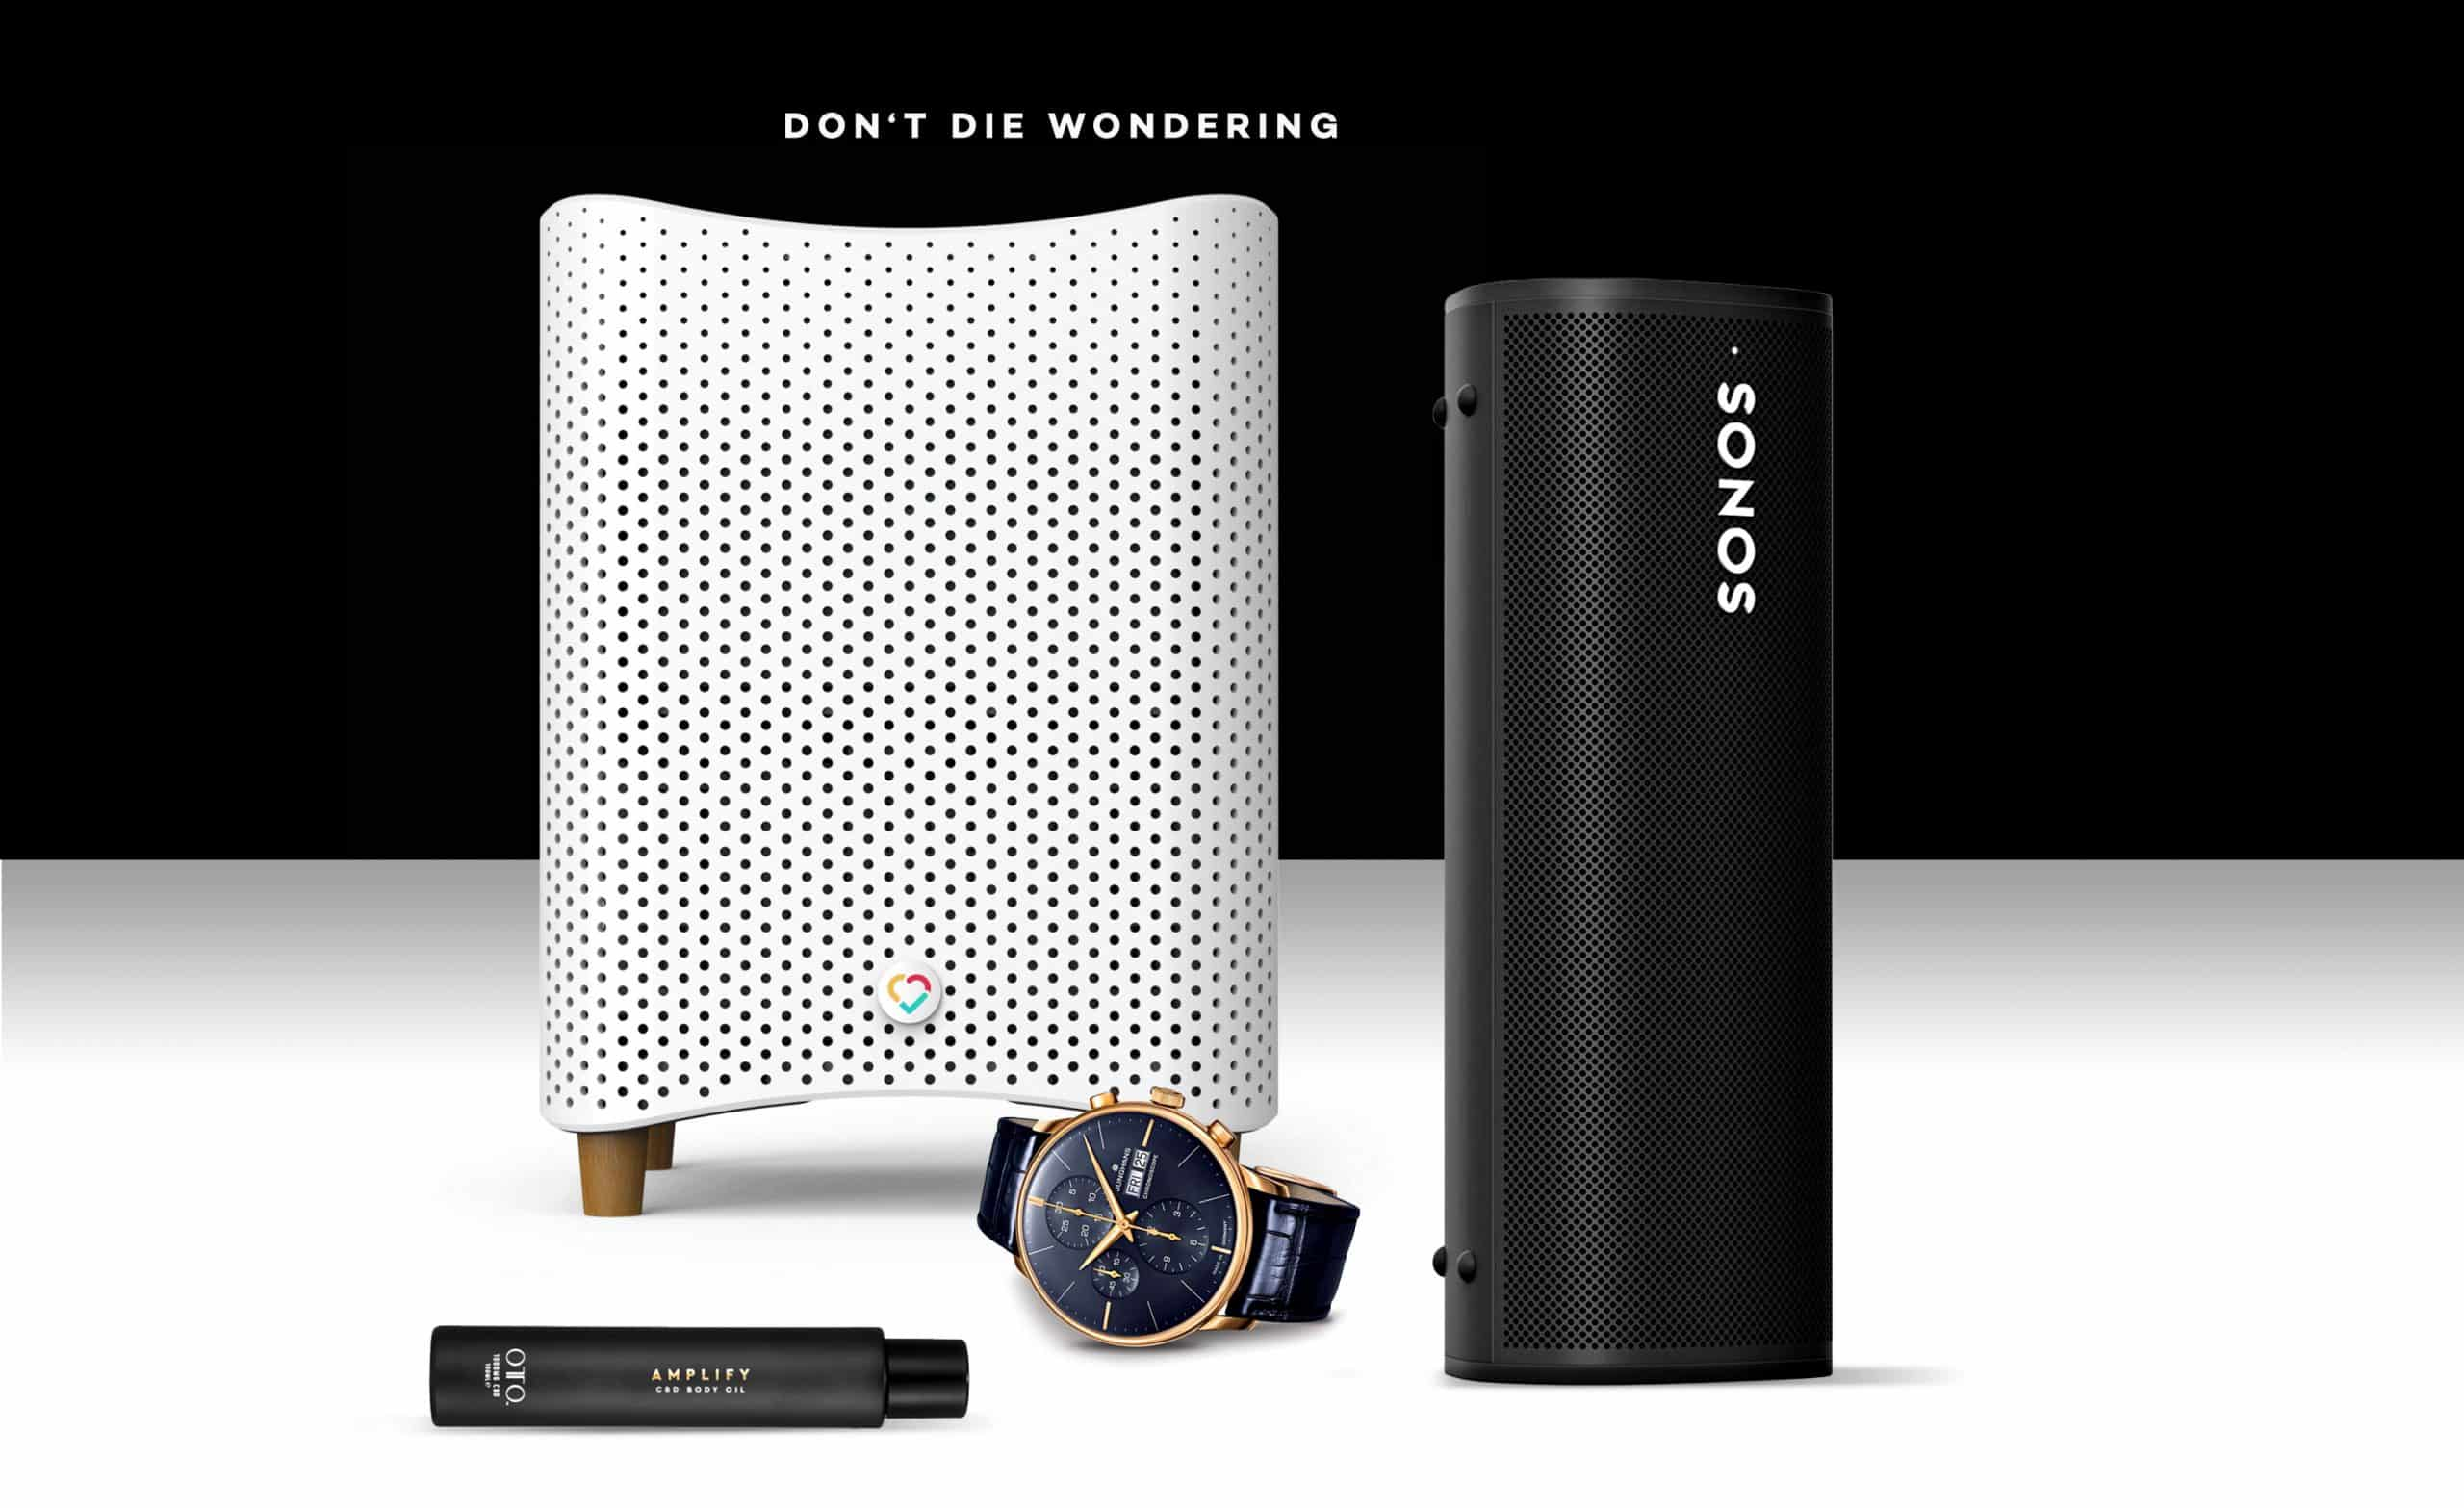 The Best Gadgets, Beauty, Homeware, and More On The Market |